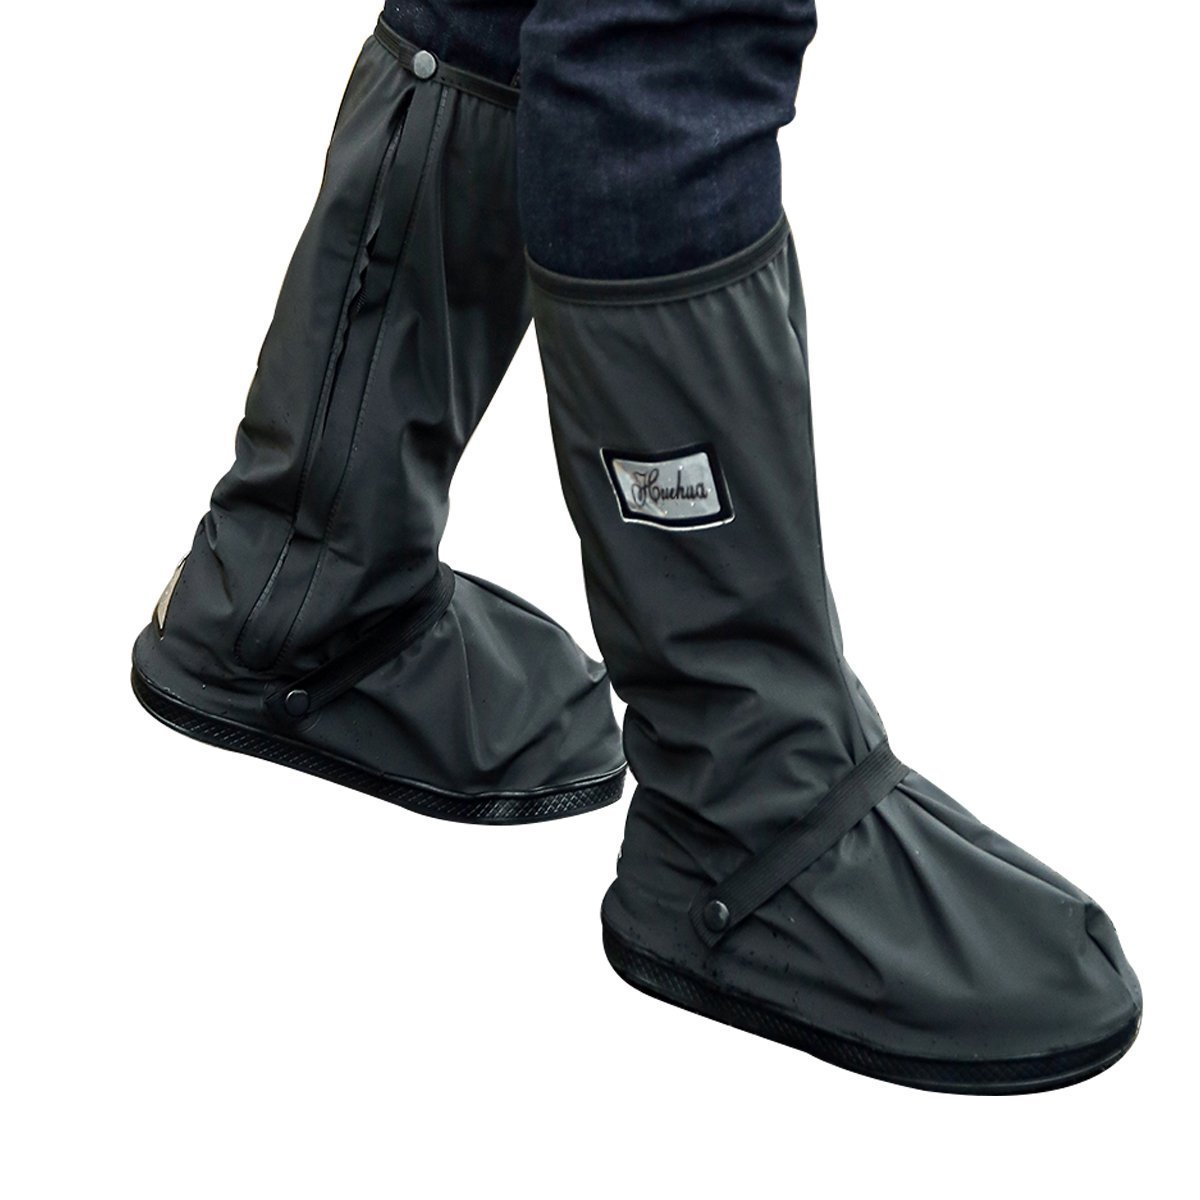 Rain Boots Covers, Waterproof Shoes Cover with Sturdy Zippers and Reflective Heels (XL)